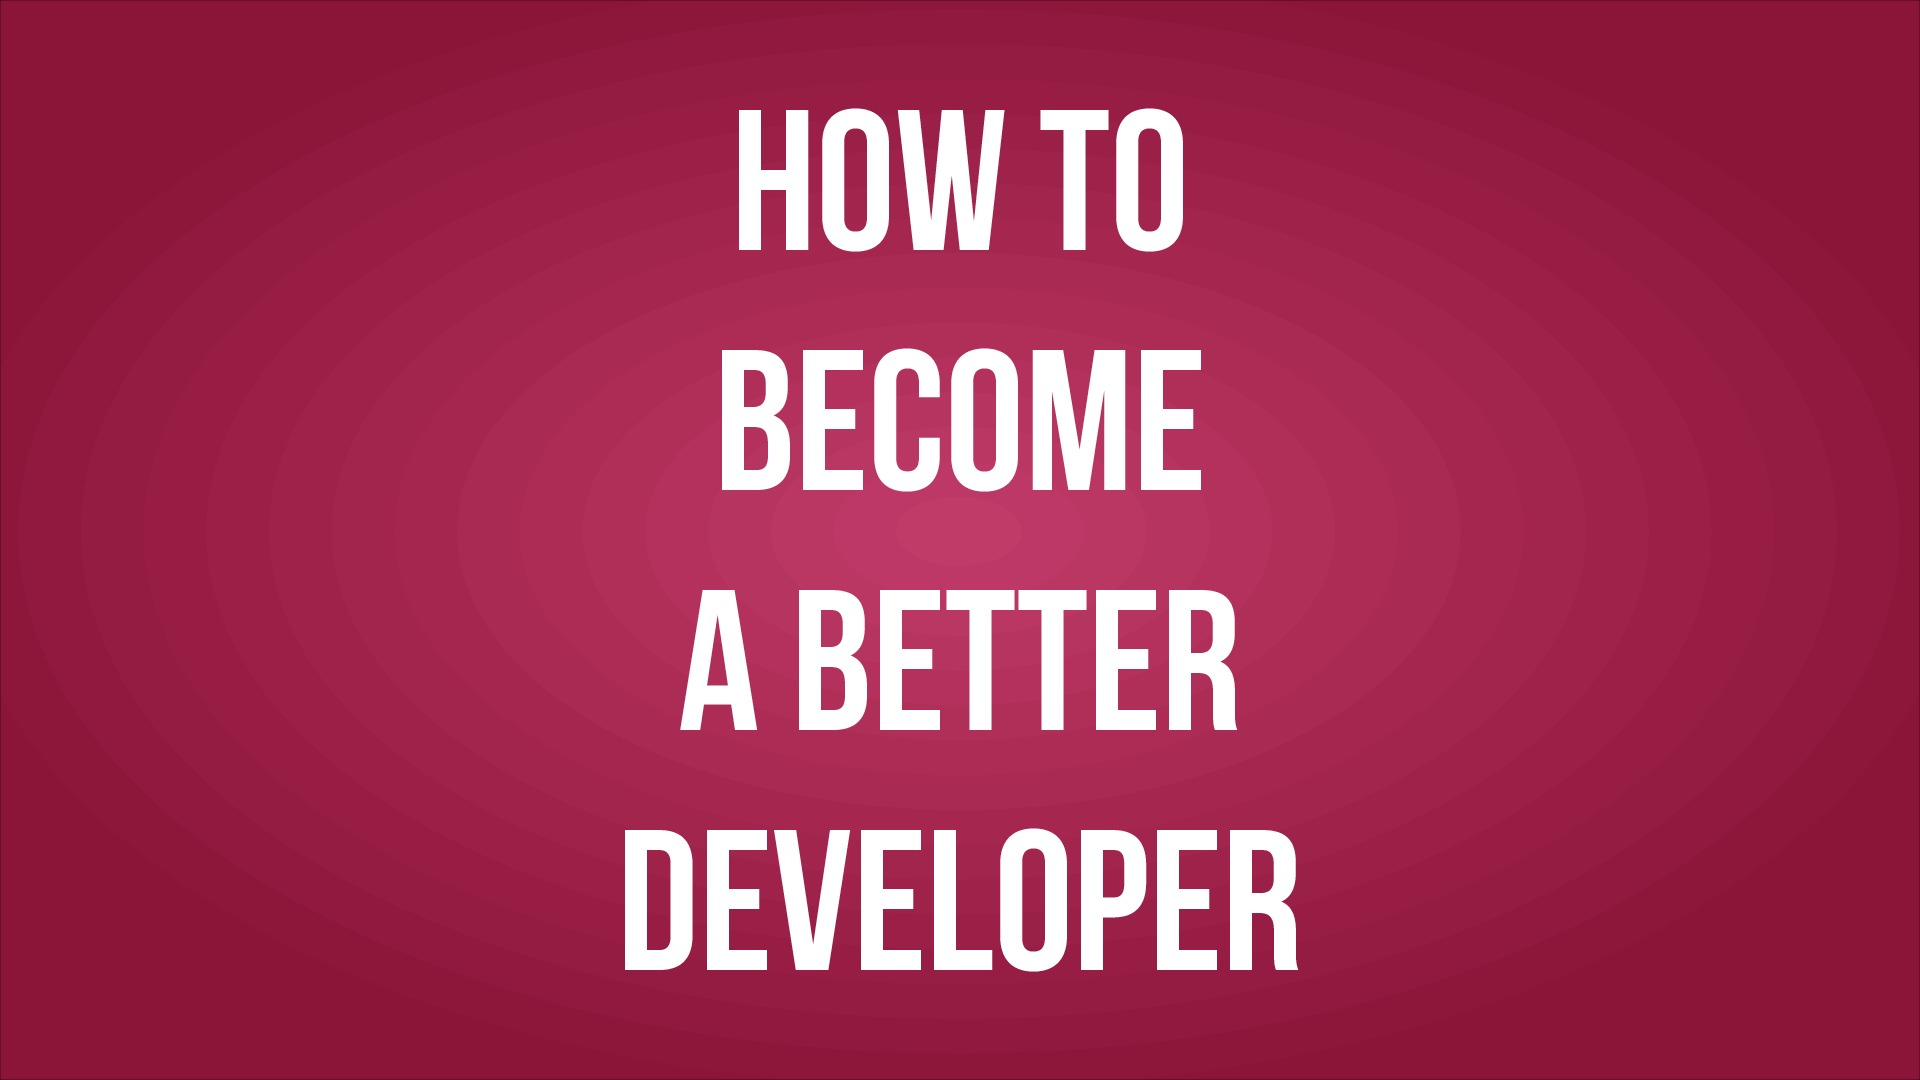 How to Become a Better Developer